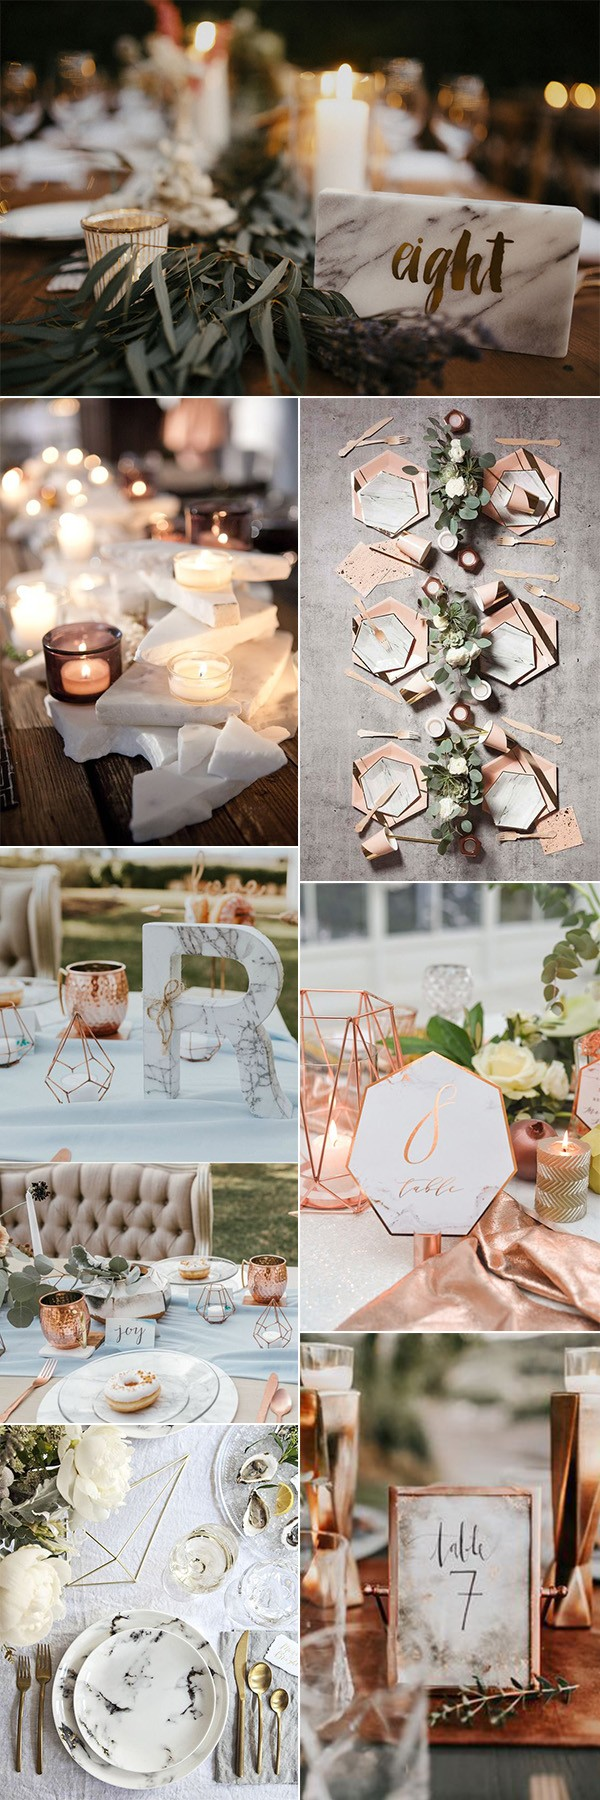 wedding table decoration ideas with marble